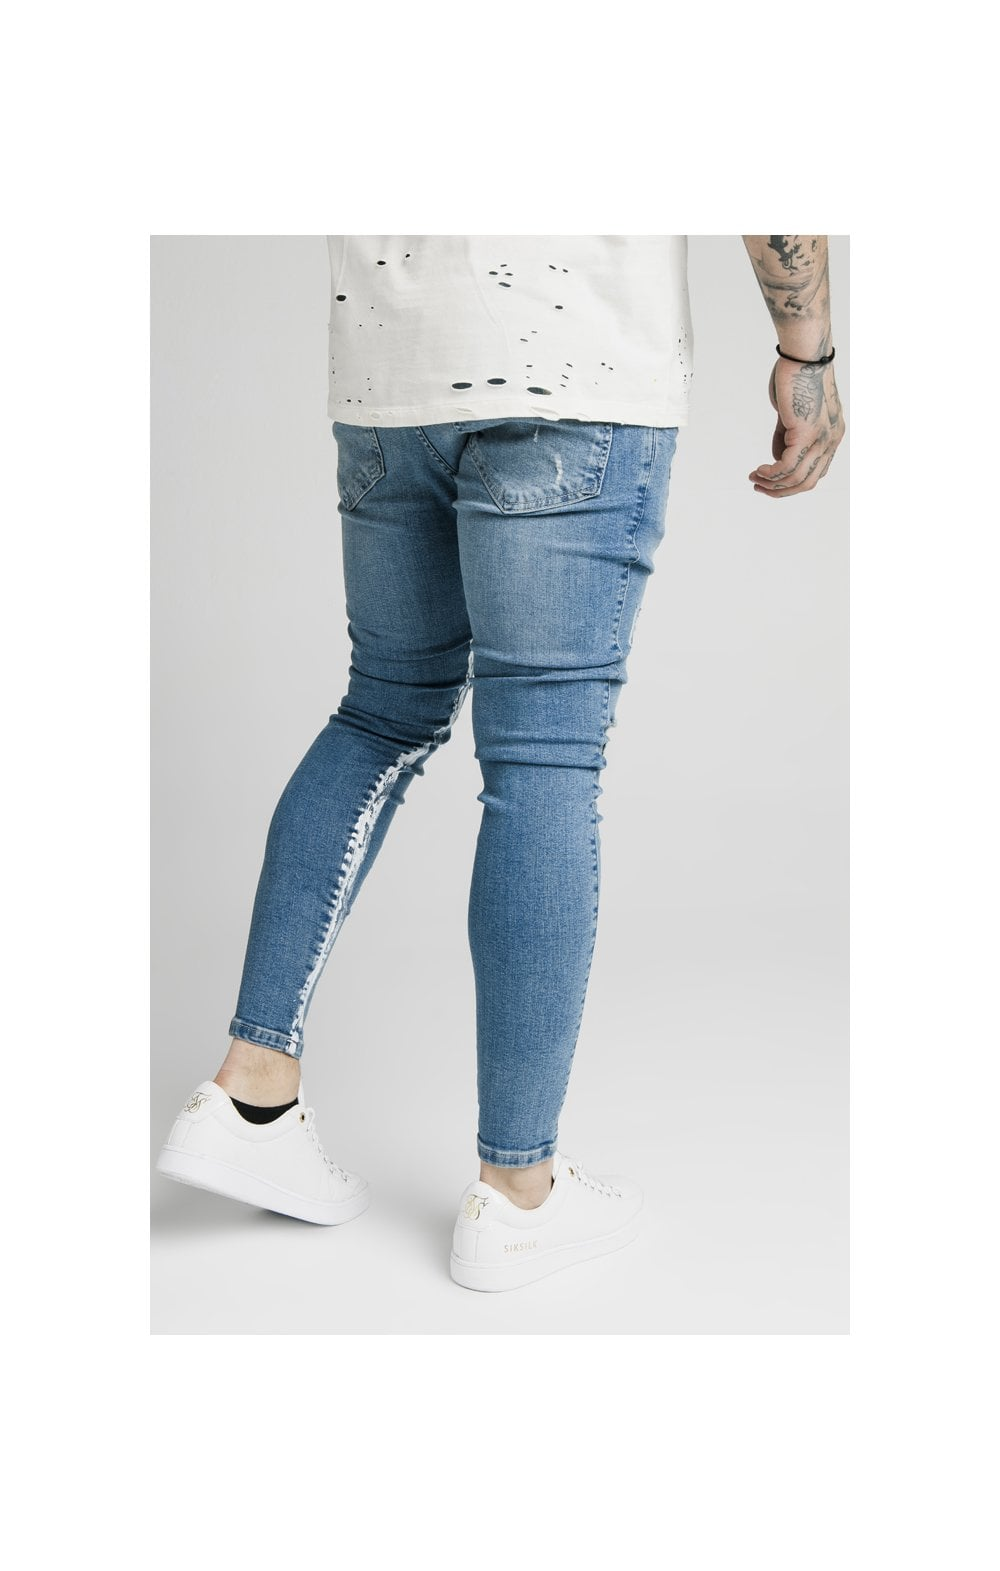 Load image into Gallery viewer, SikSilk Skinny Distressed Paint Stripe Denims - Midstone & White (2)